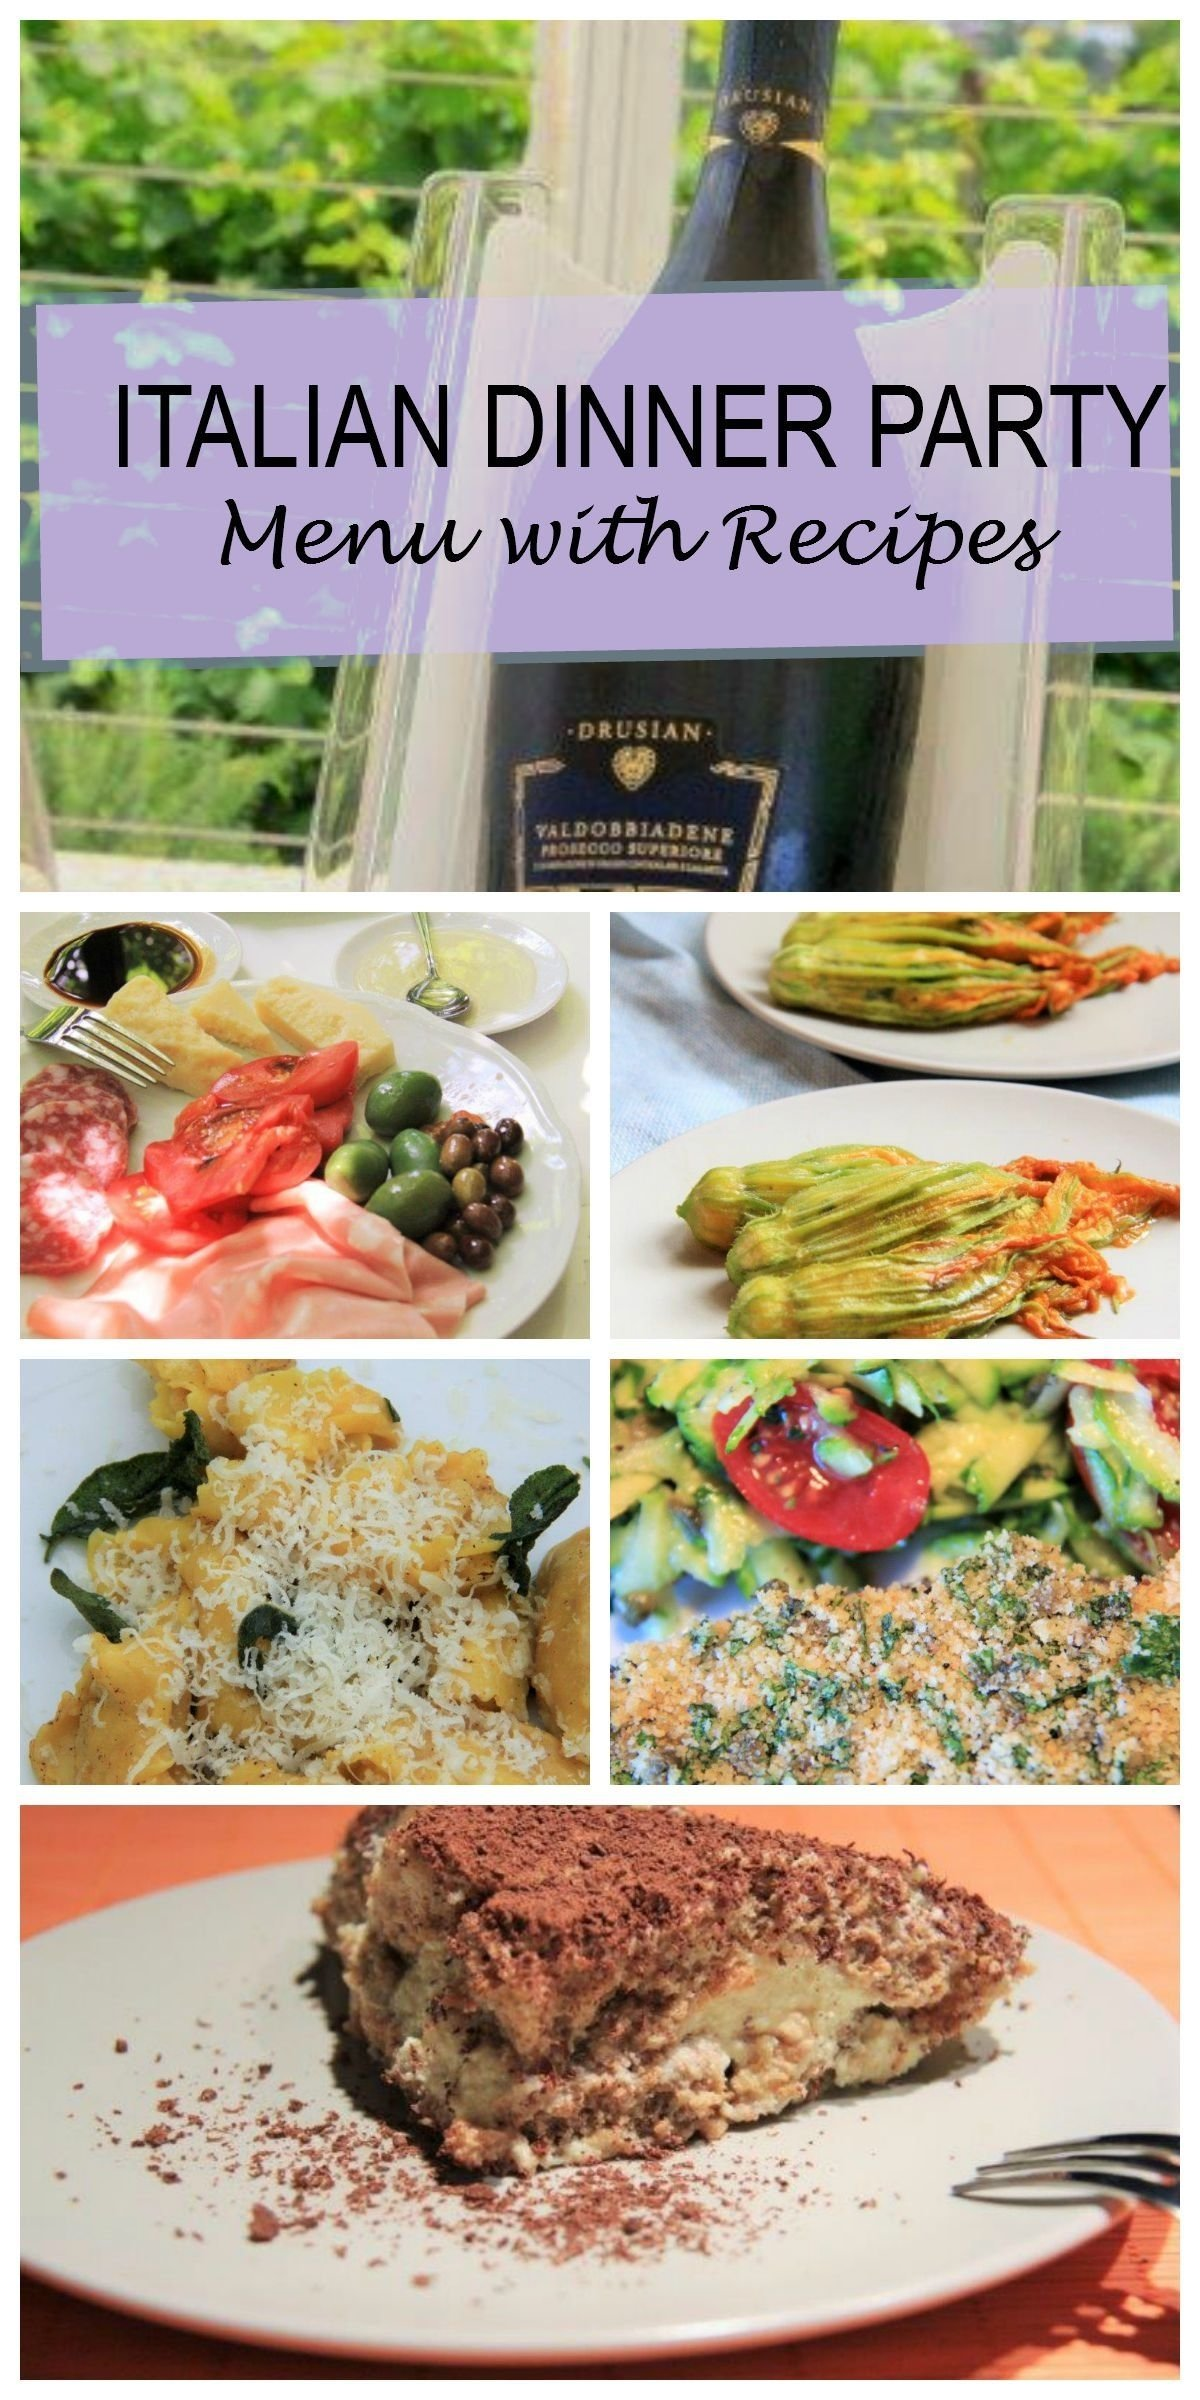 10 Attractive Easy Dinner Party Menu Ideas italian dinner party menu complete with recipes for easy 2 2020